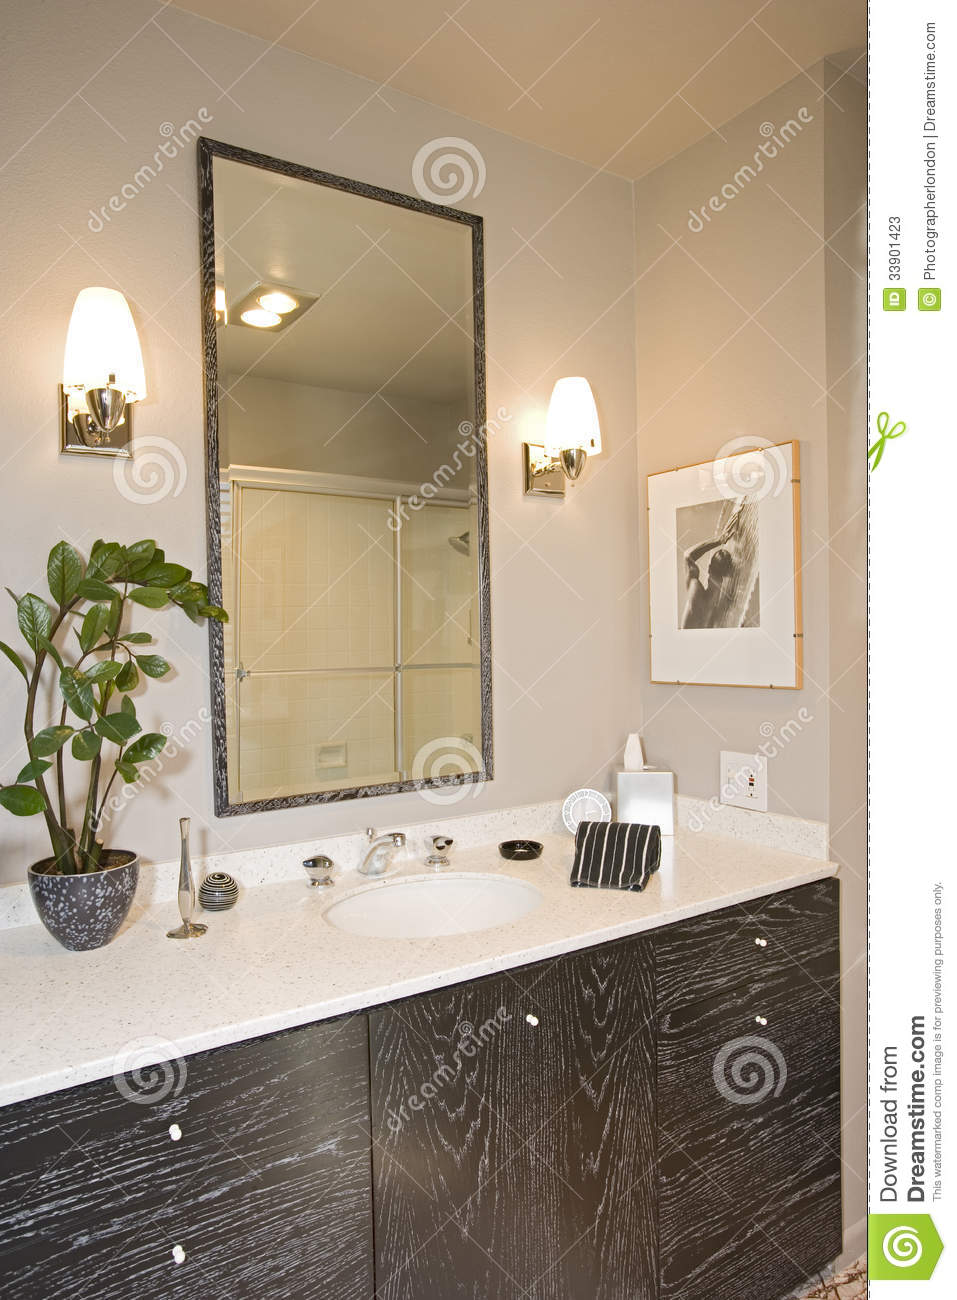 Lamps By Mirror Over Washbasin In Bathroom Stock Image - Image of ...